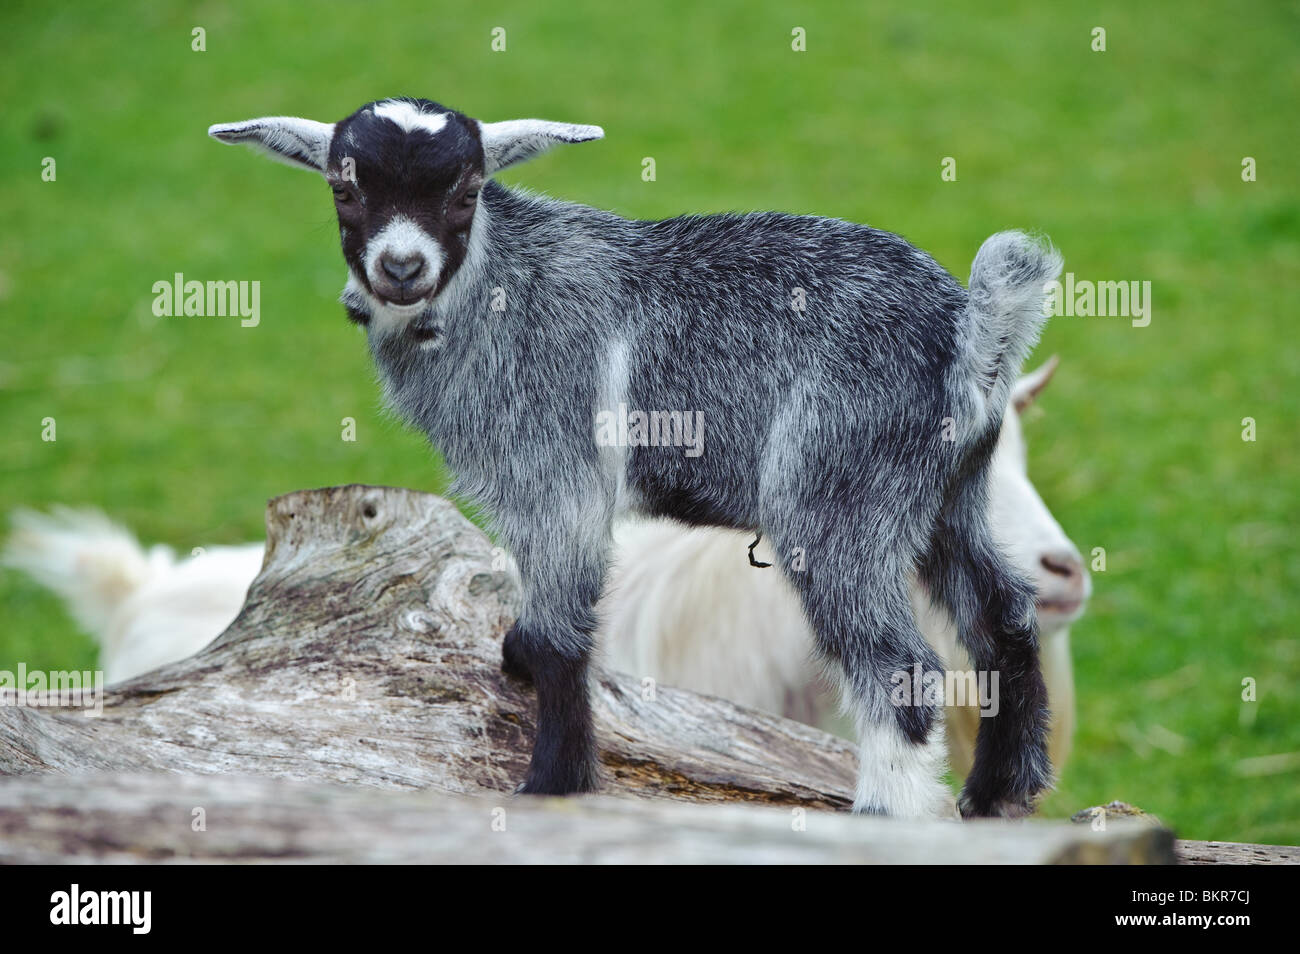 Baby goats playing and jumping